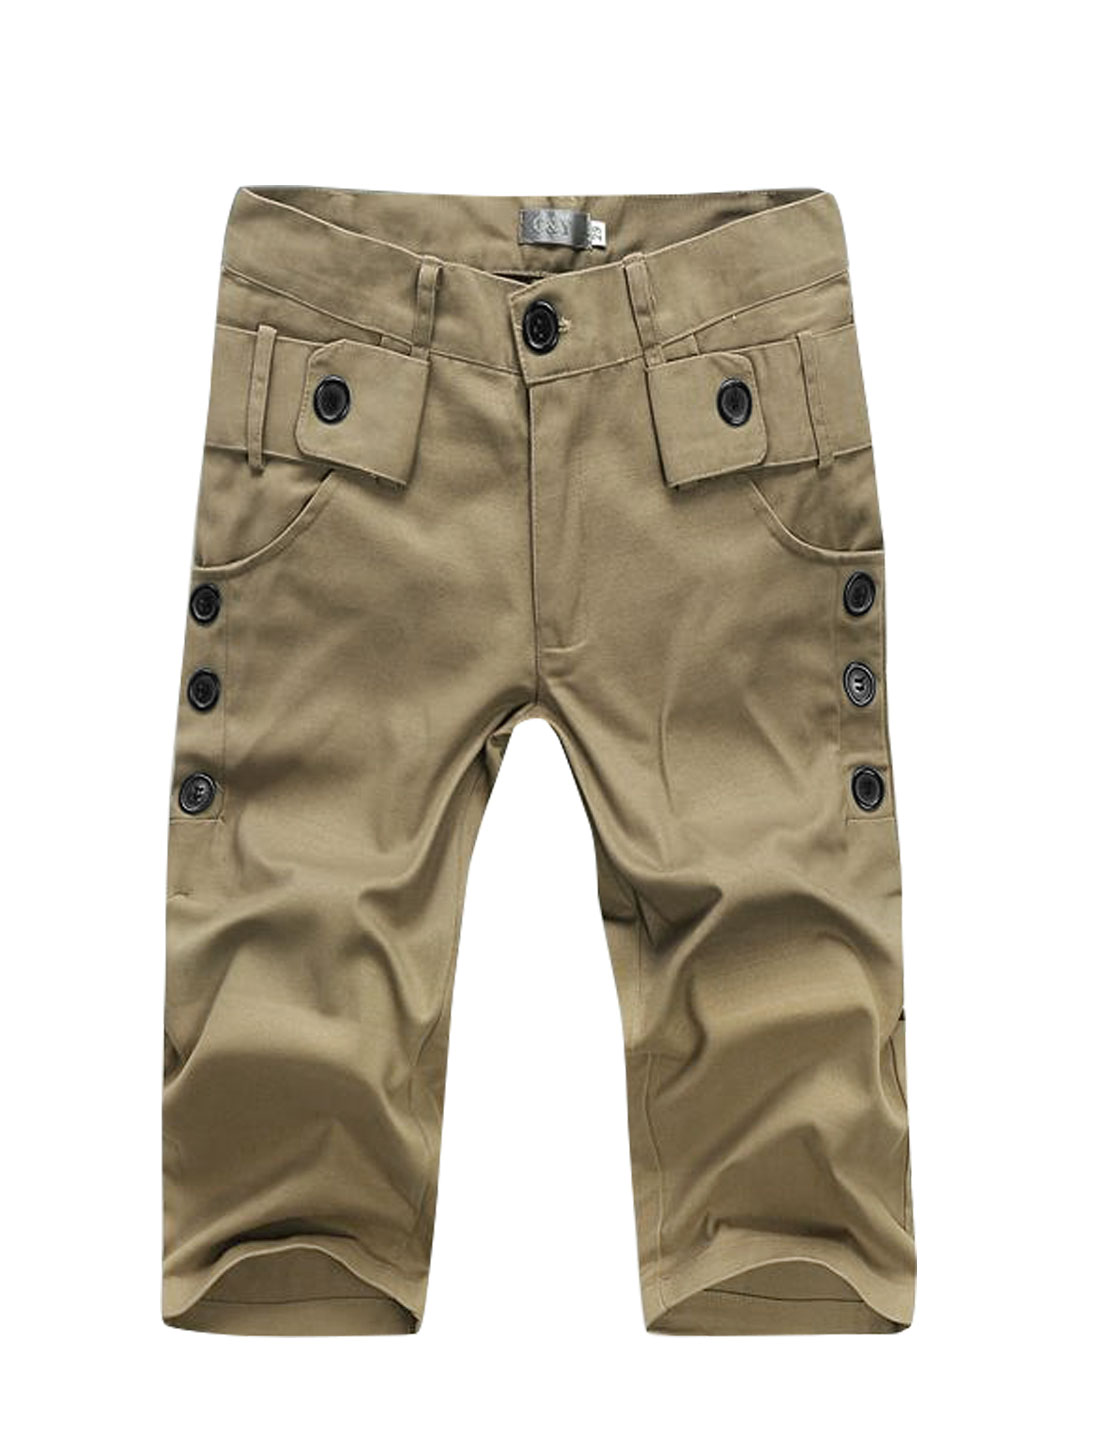 Men Mid Rise Buttons Decor Knee Length Straight Shorts Brown W30